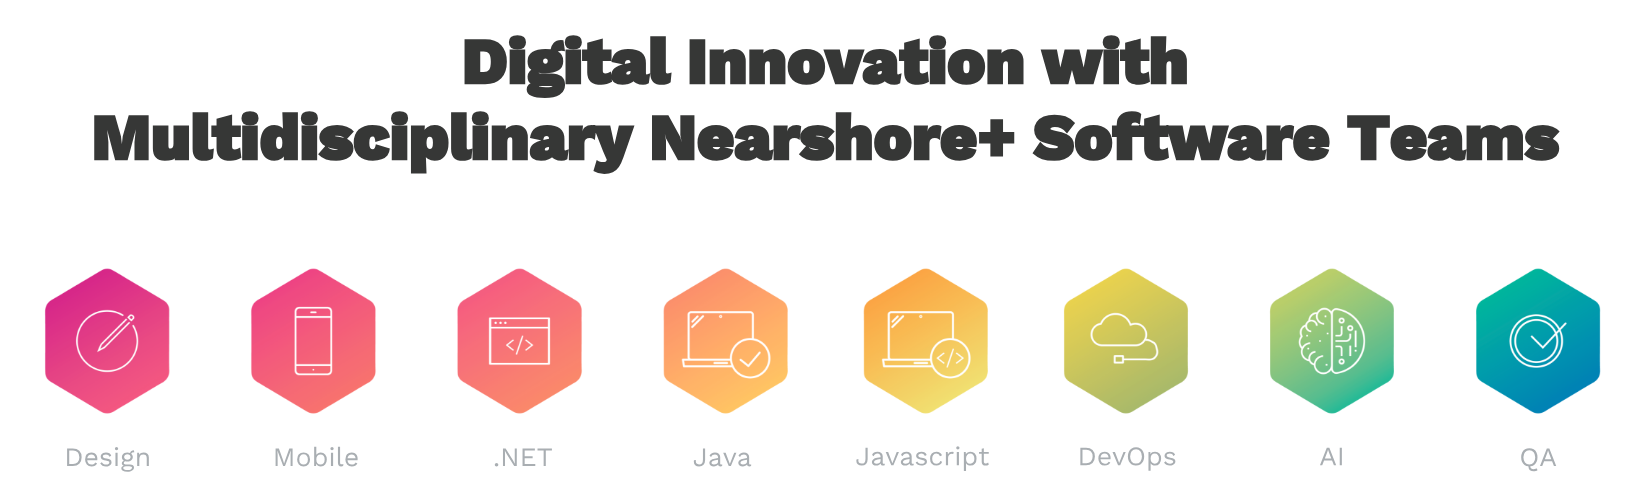 Digital Innovation with Multidisciplinary Nearshore+ Software Teams